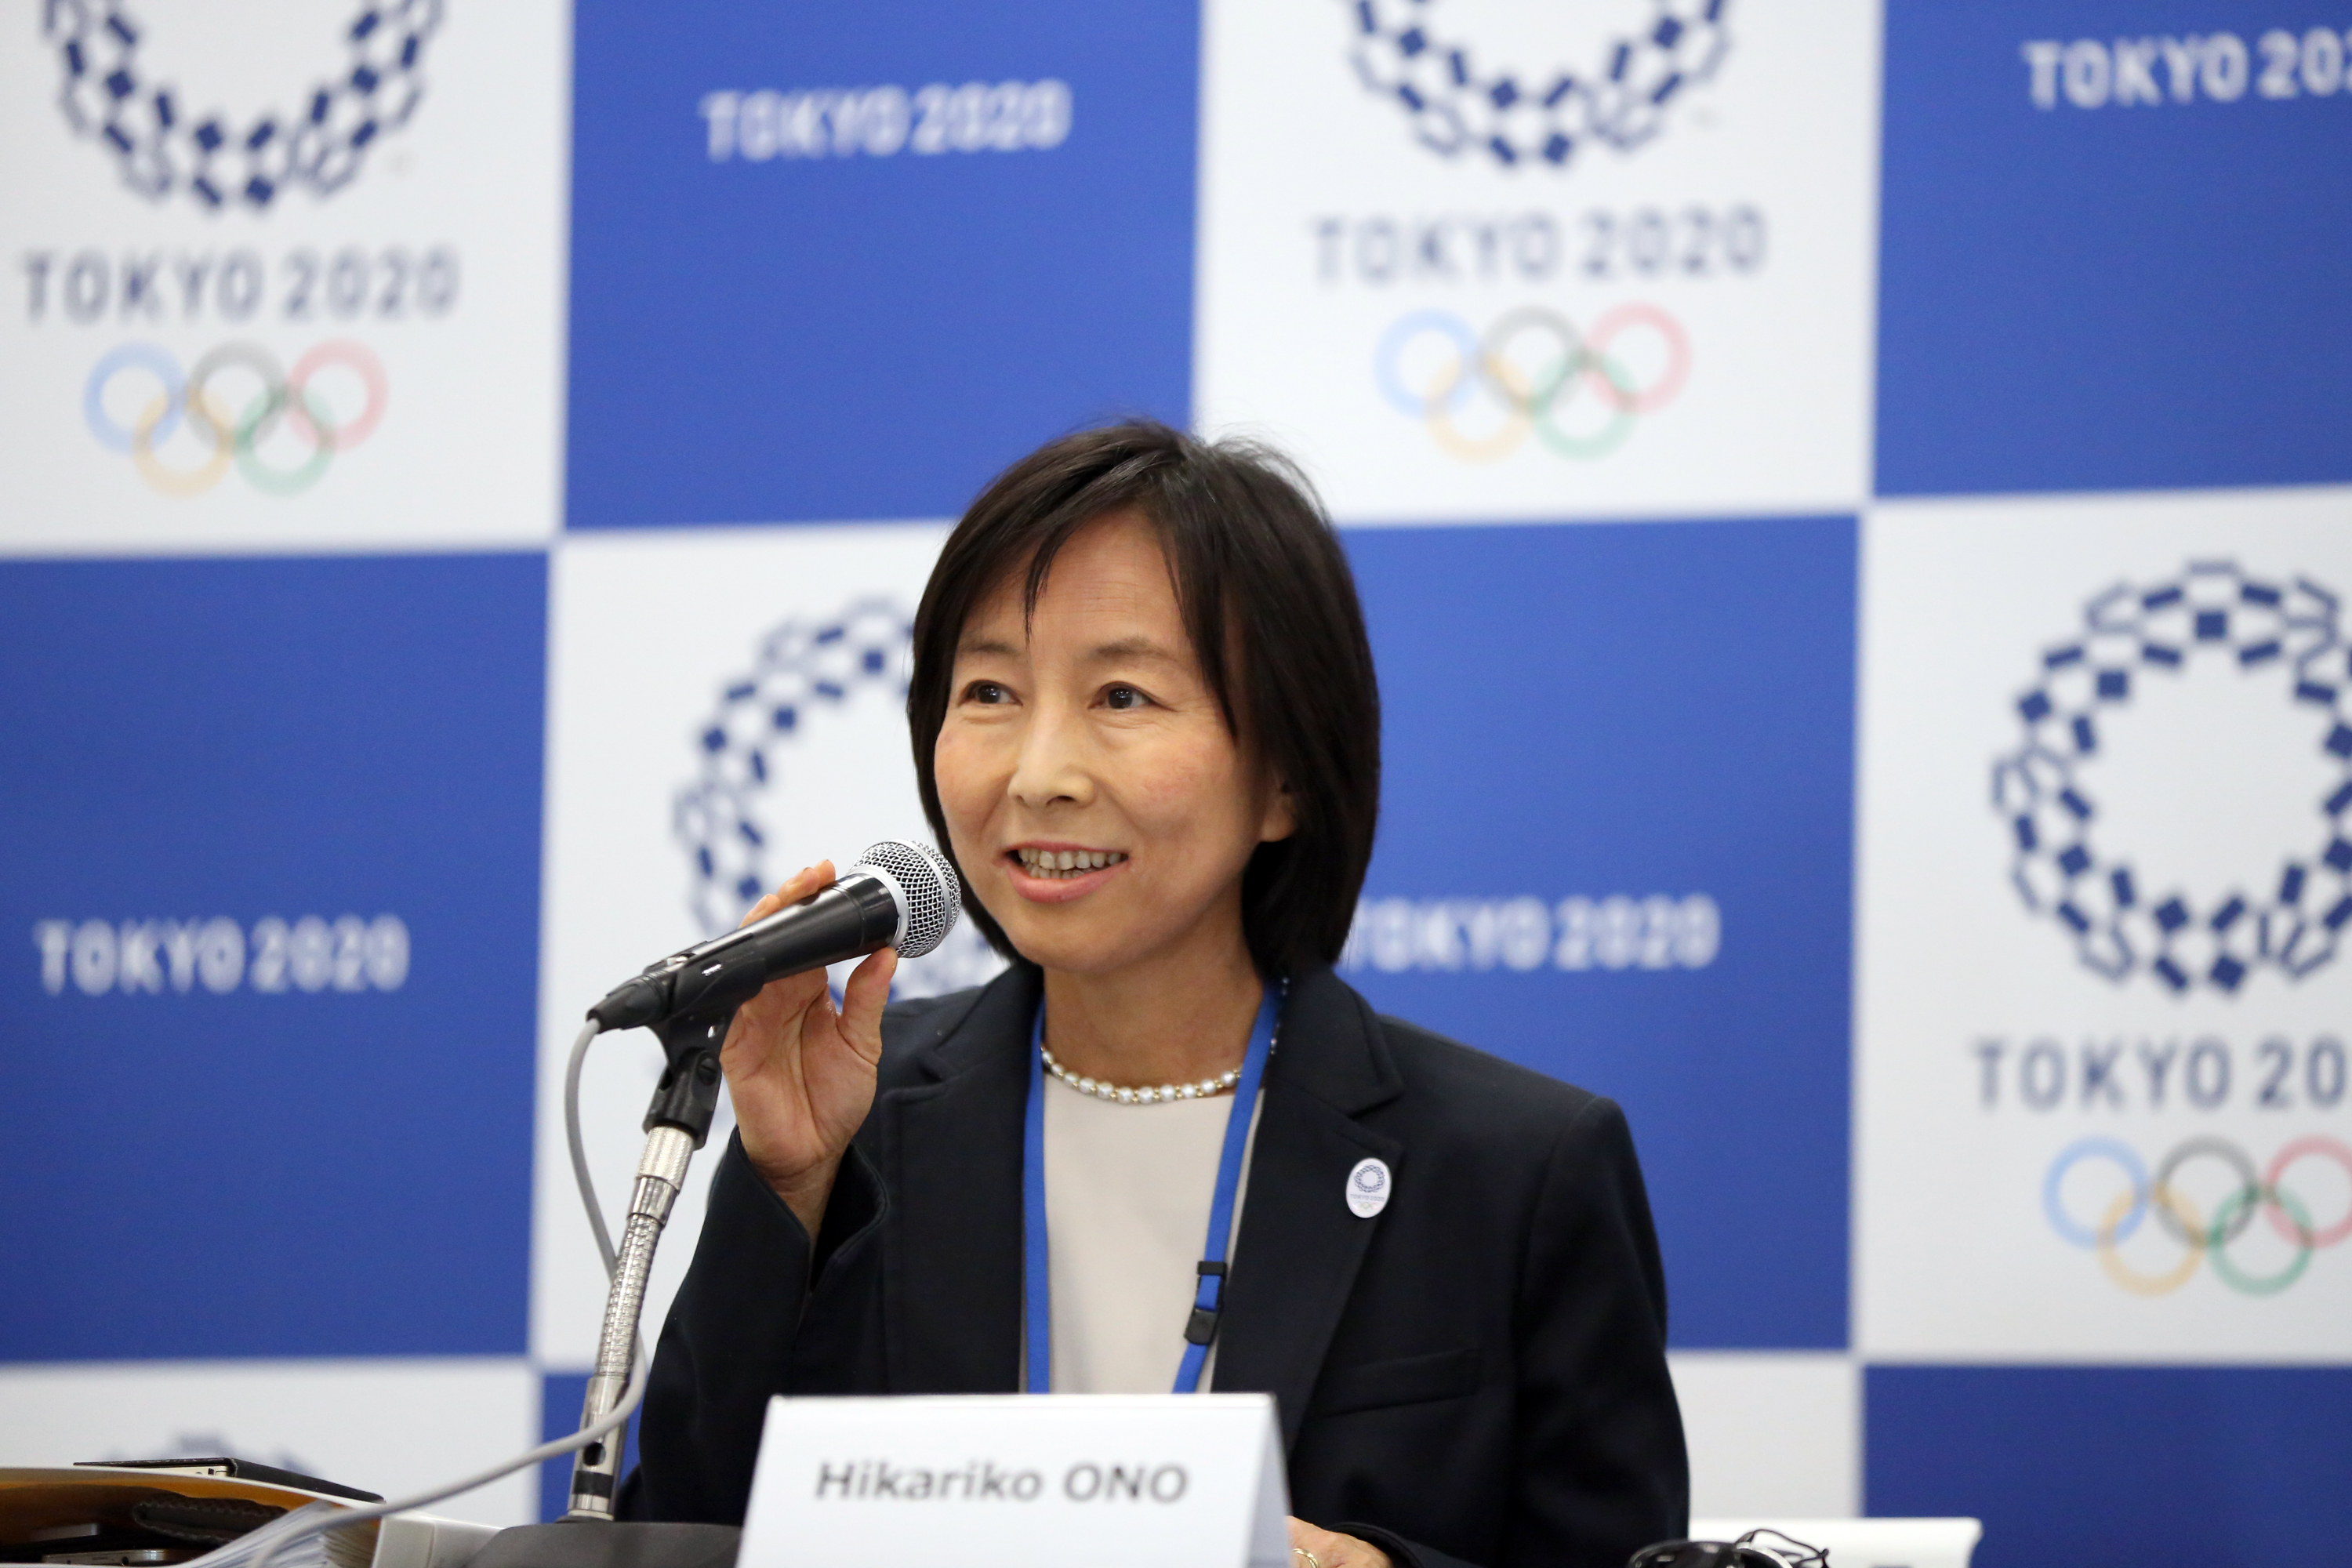 going for gold interview hikariko ono tokyo 2020 going for gold interview hikariko ono tokyo 2020 spokesperson